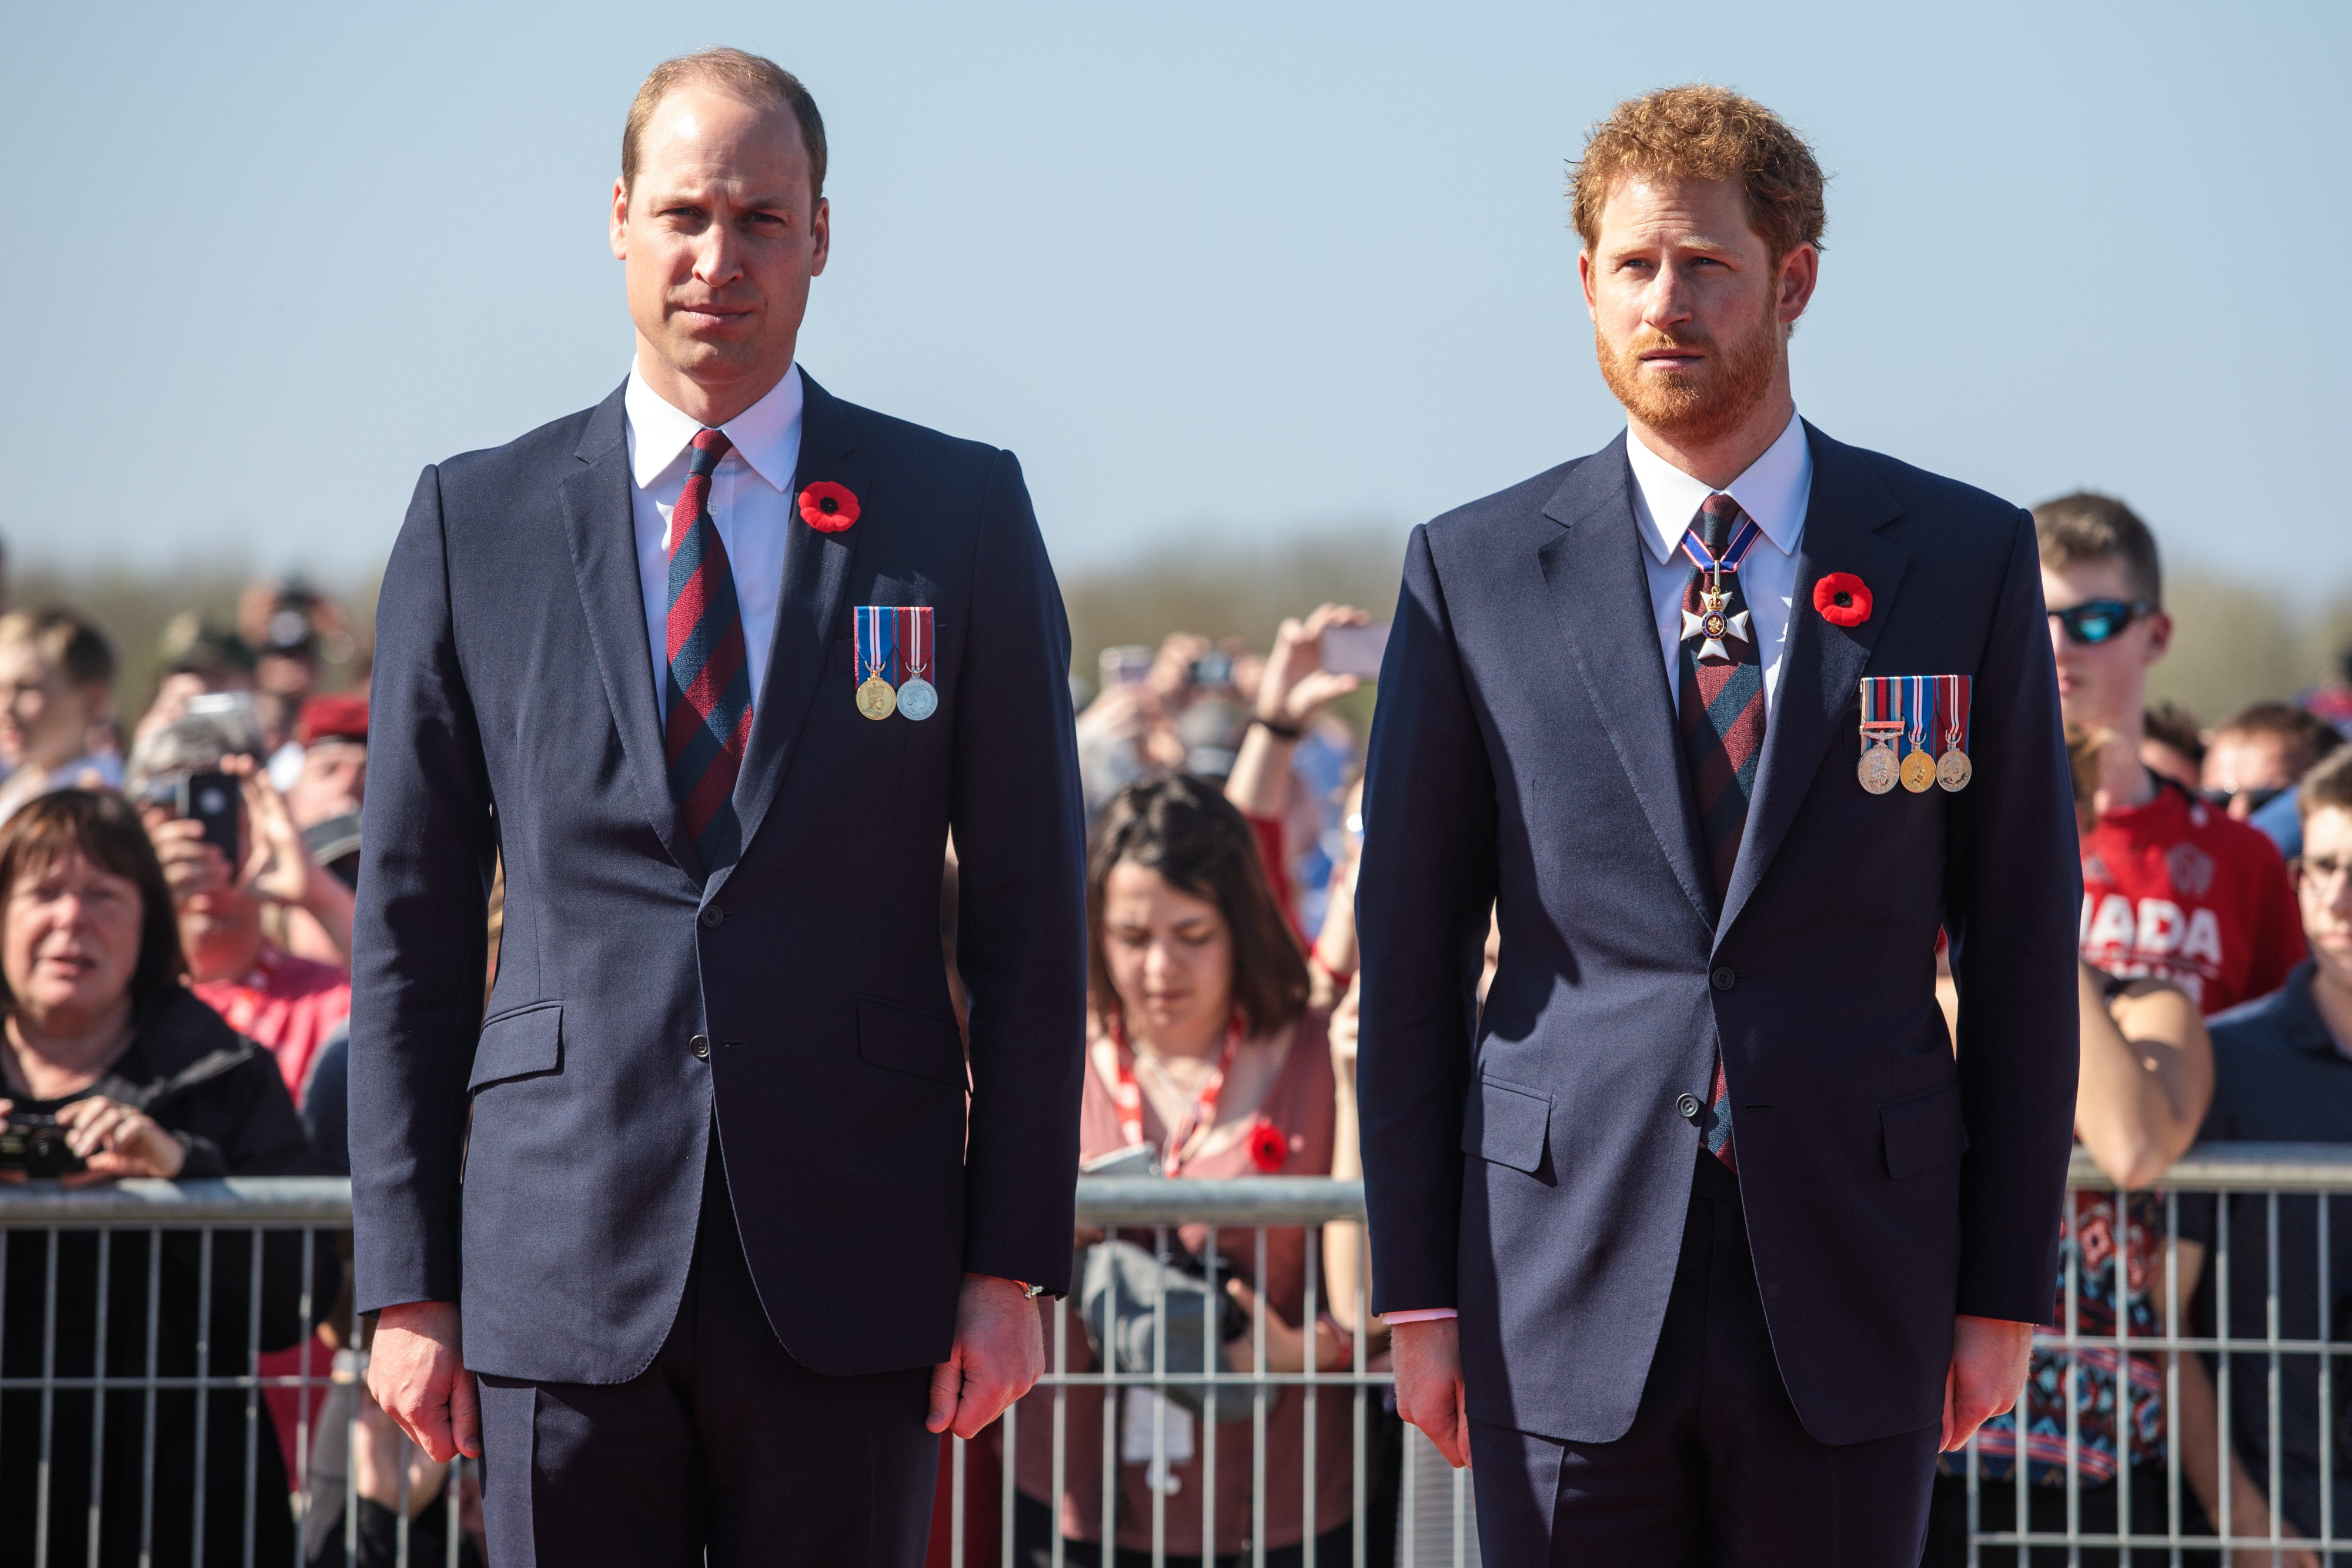 Prince William and Prince Harry arrive at the Canadian National Vimy Memorial on April 9, 2017 in Vimy, France | Photo: Getty Images